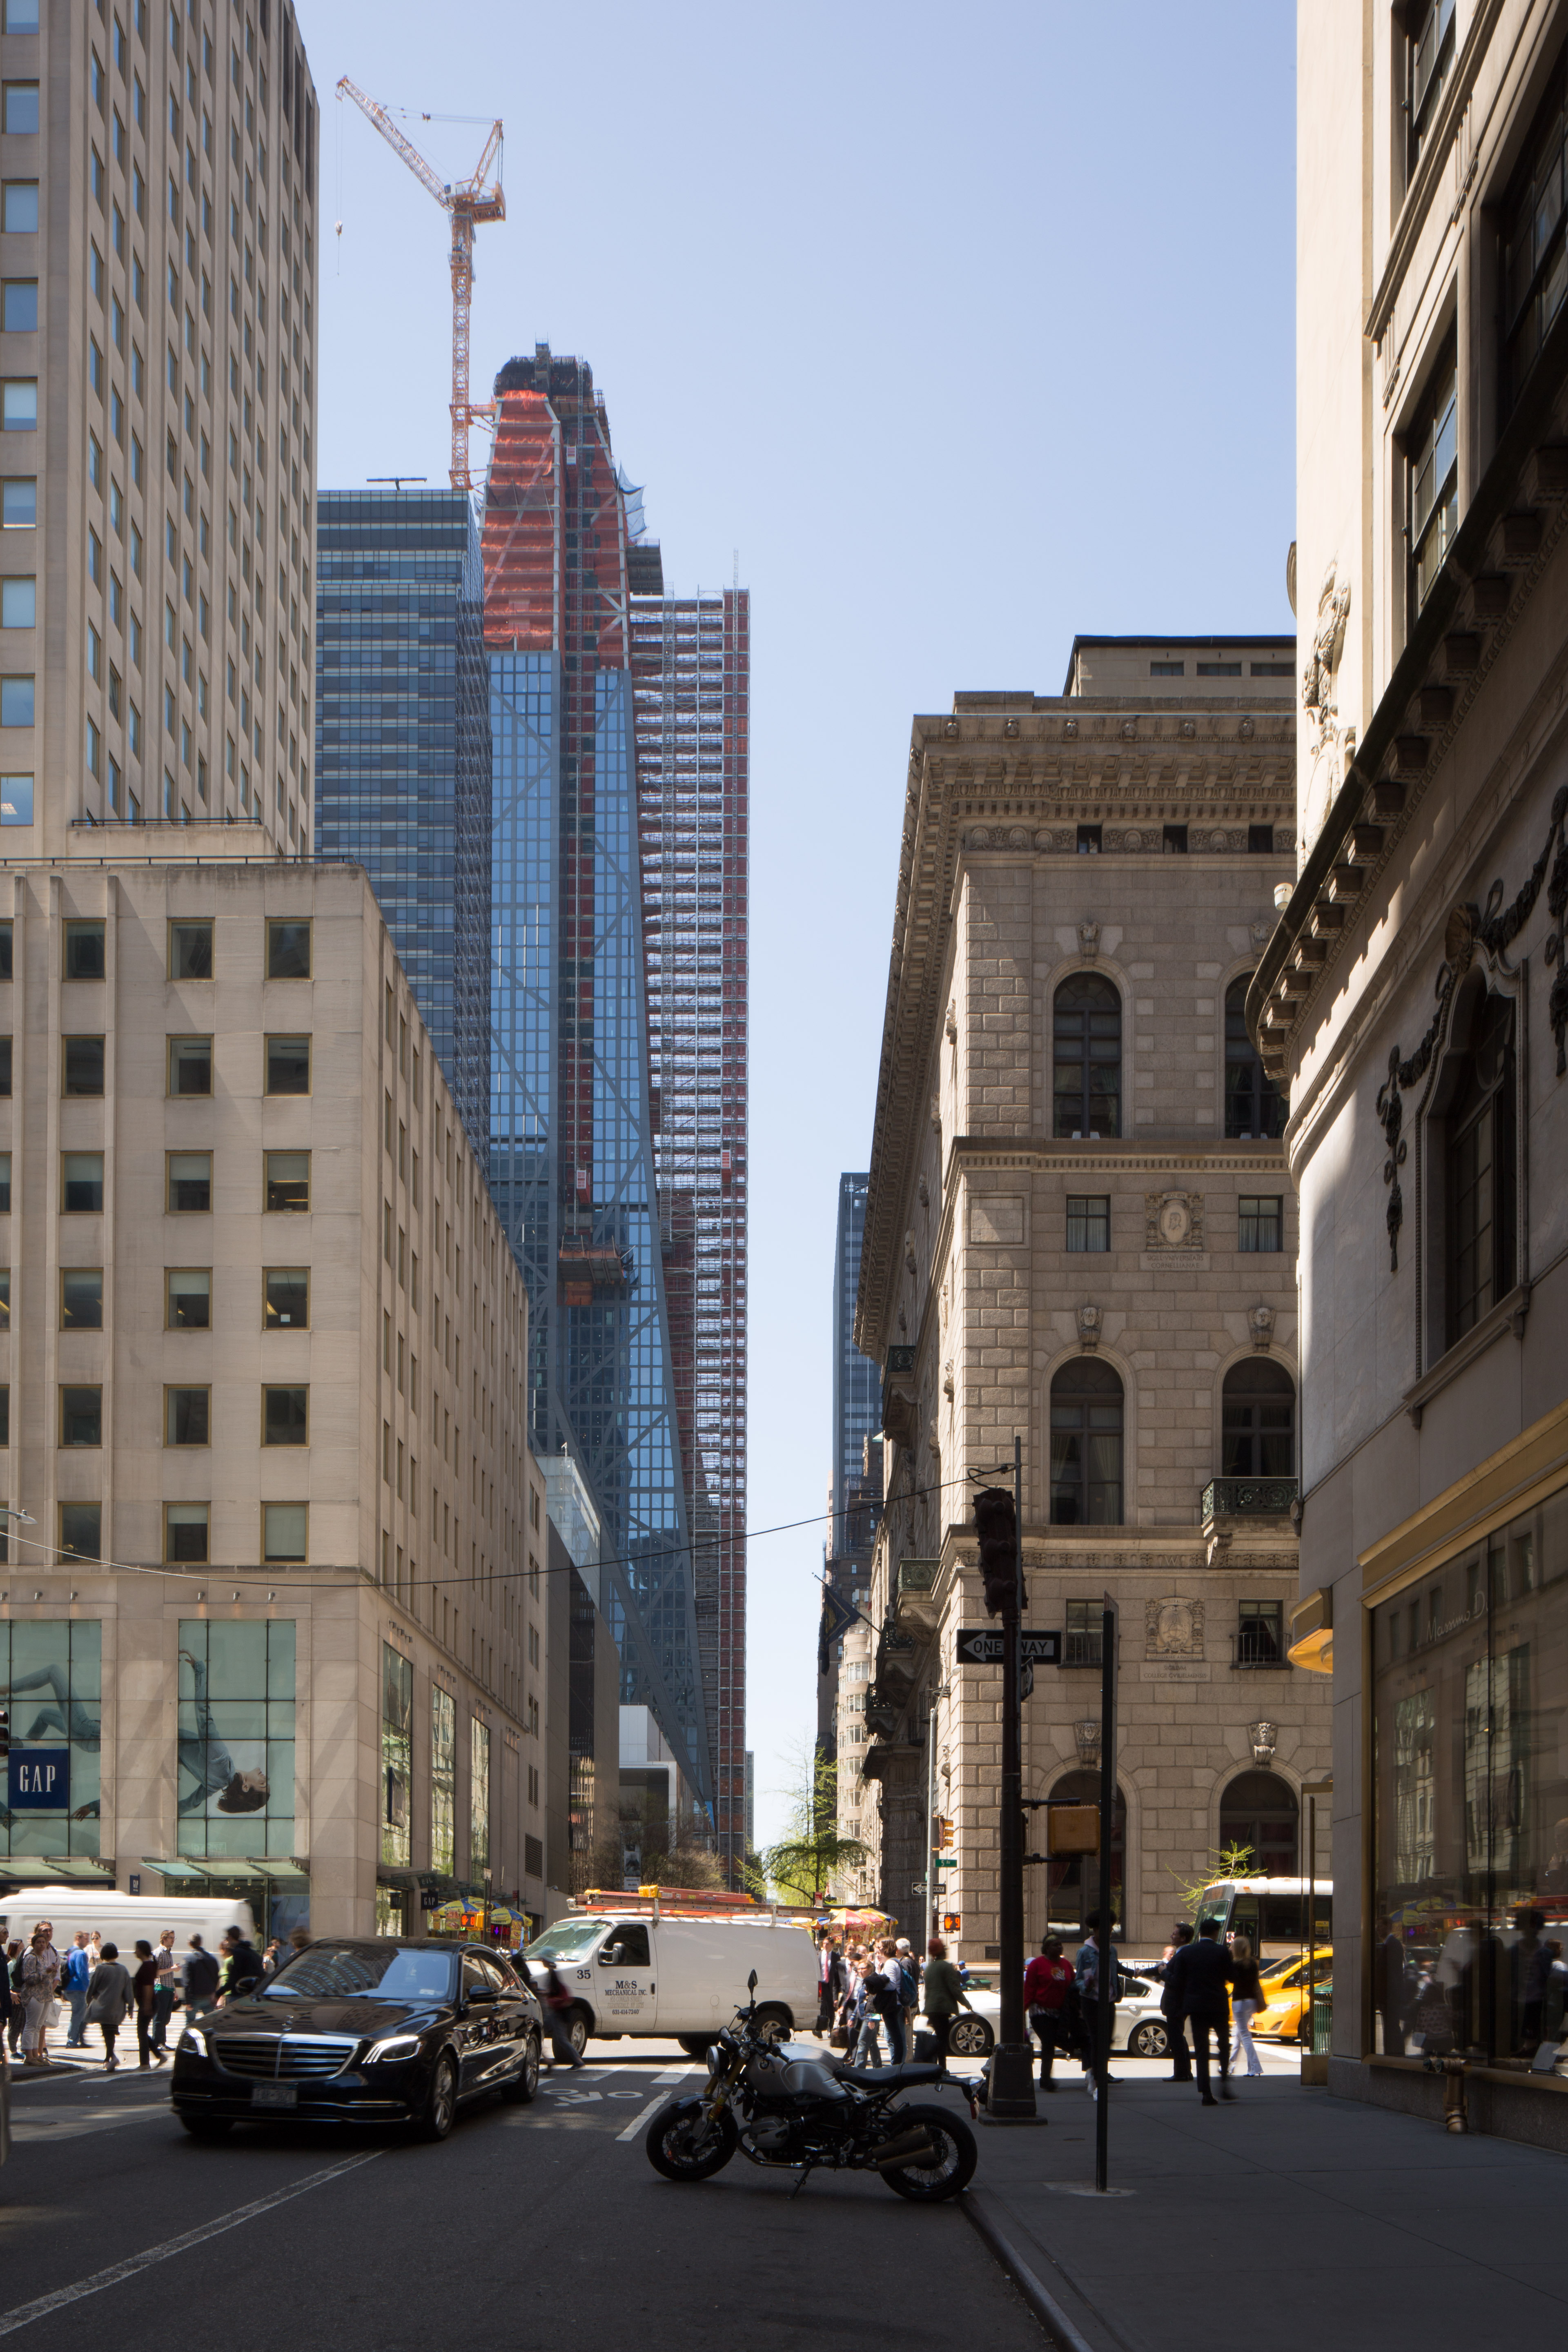 53W53 from 5th Avenue, image by Andrew Campbell Nelson